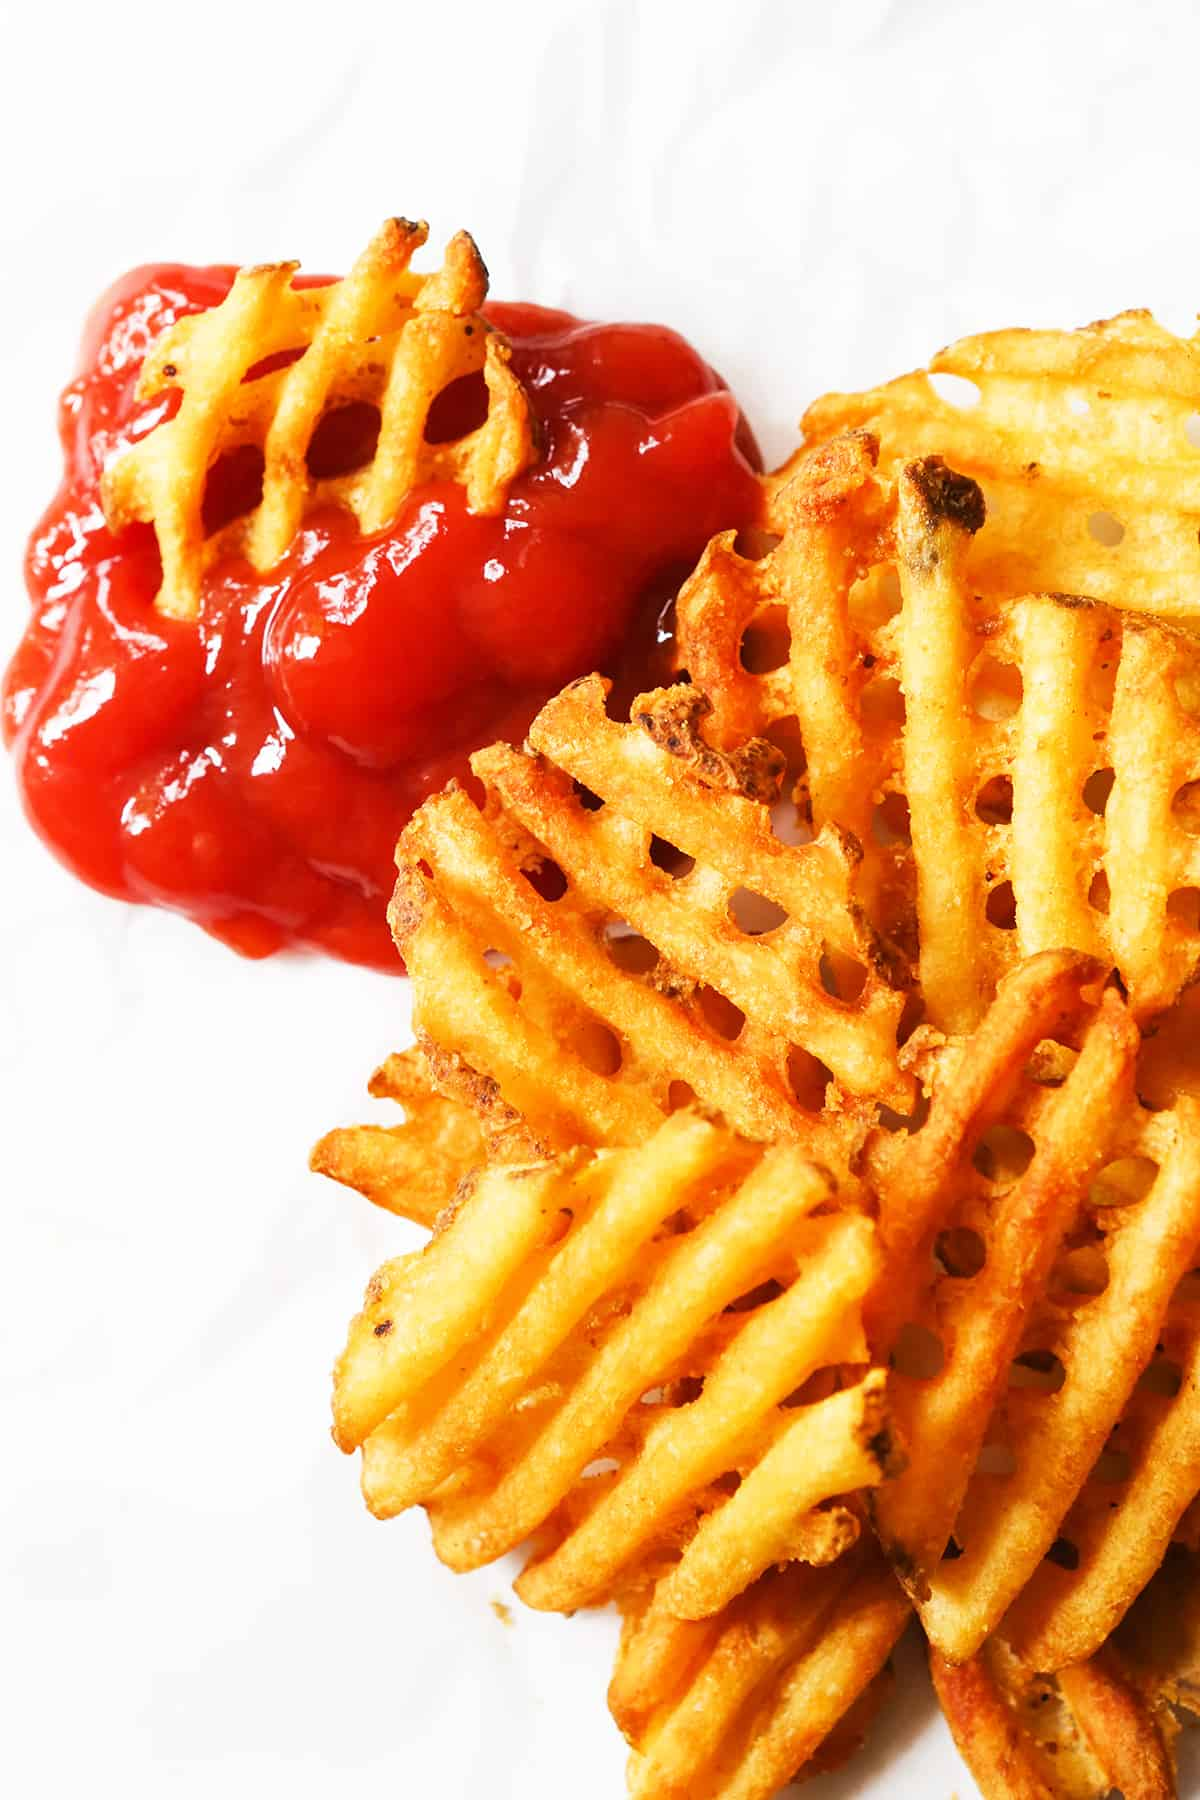 Waffle fries stacked on parchment next to a glob of ketchup.